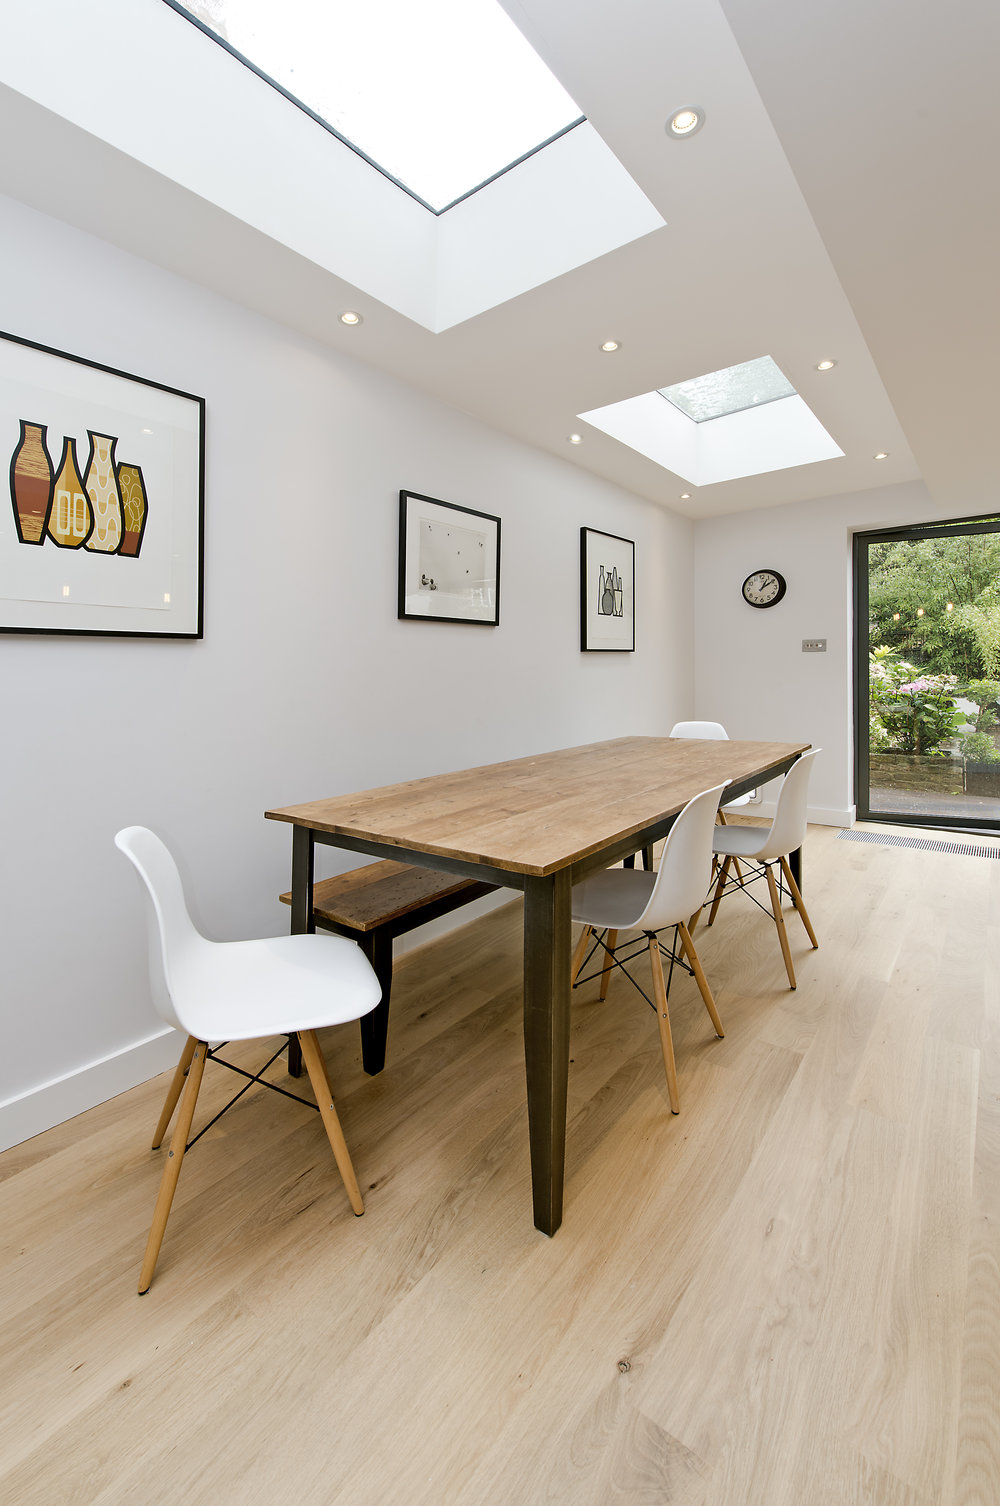 5-Chiswick W4 Kithchen Extension 2.jpg